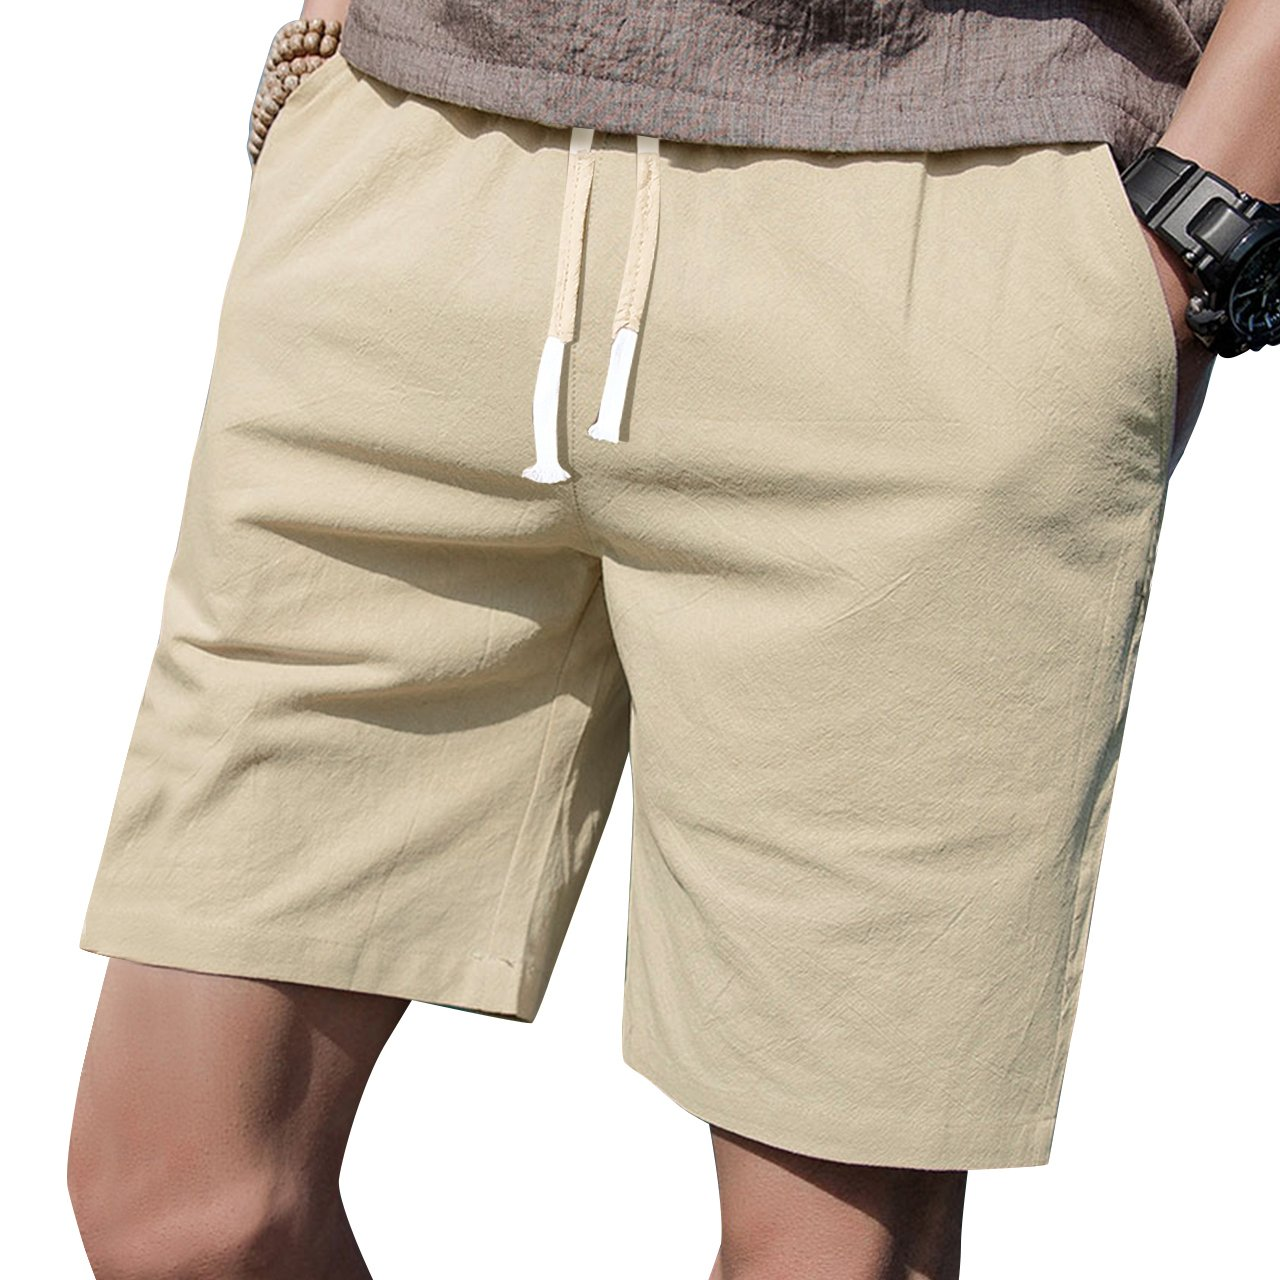 LTIFONE Mens 7'' Inseam Causal Beach Shorts with Elastic Waist Drawstring Lightweight Slim Fit Summer Short Pants with Pockets(Khaki,M)